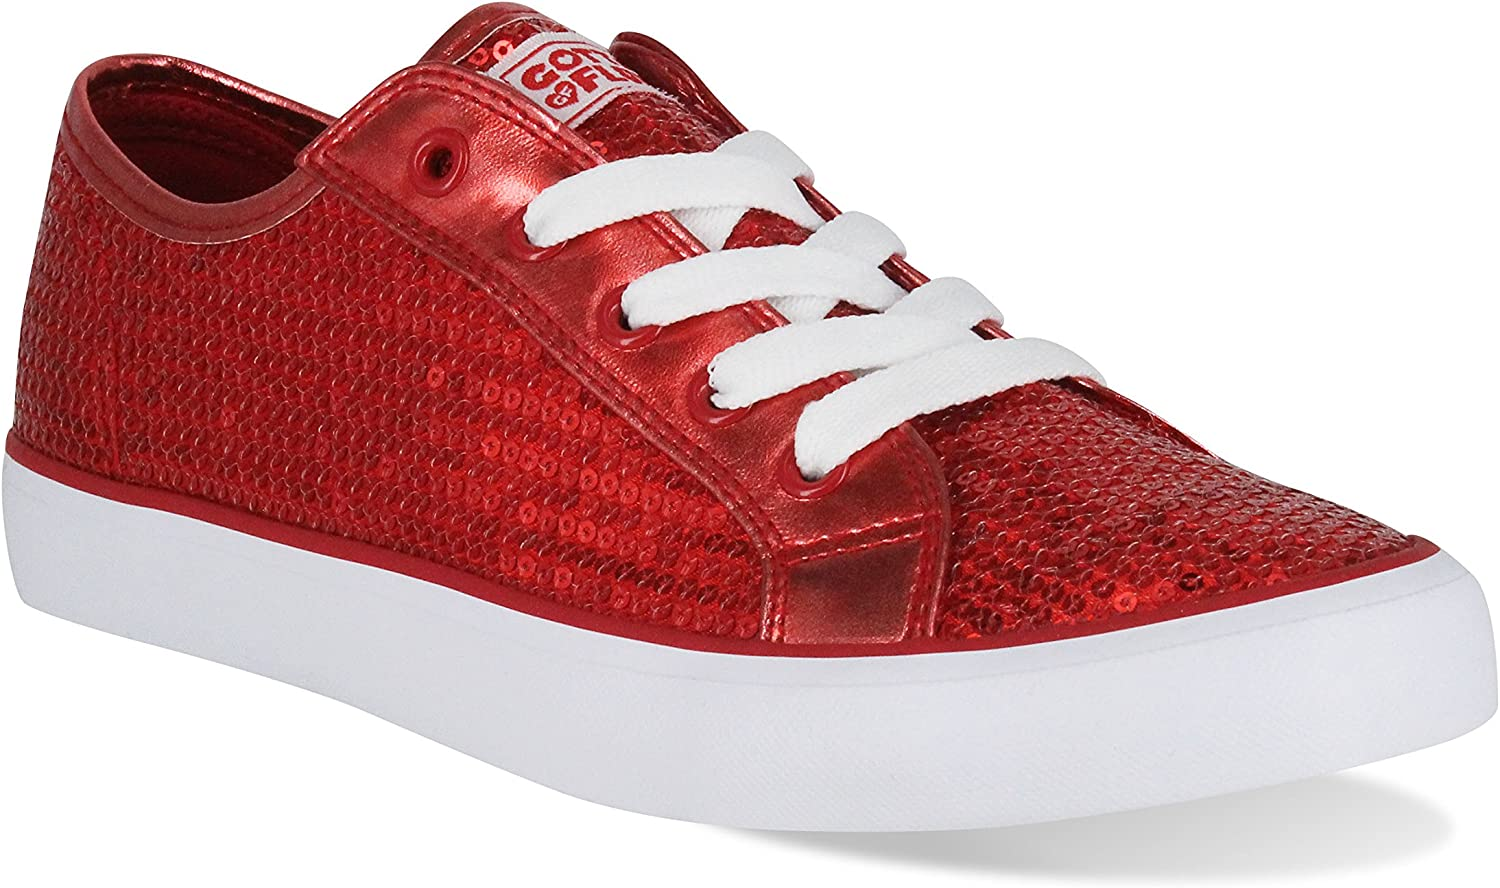 Gotta Flurt Youth Disco II Lace Up Low Top Sneakers